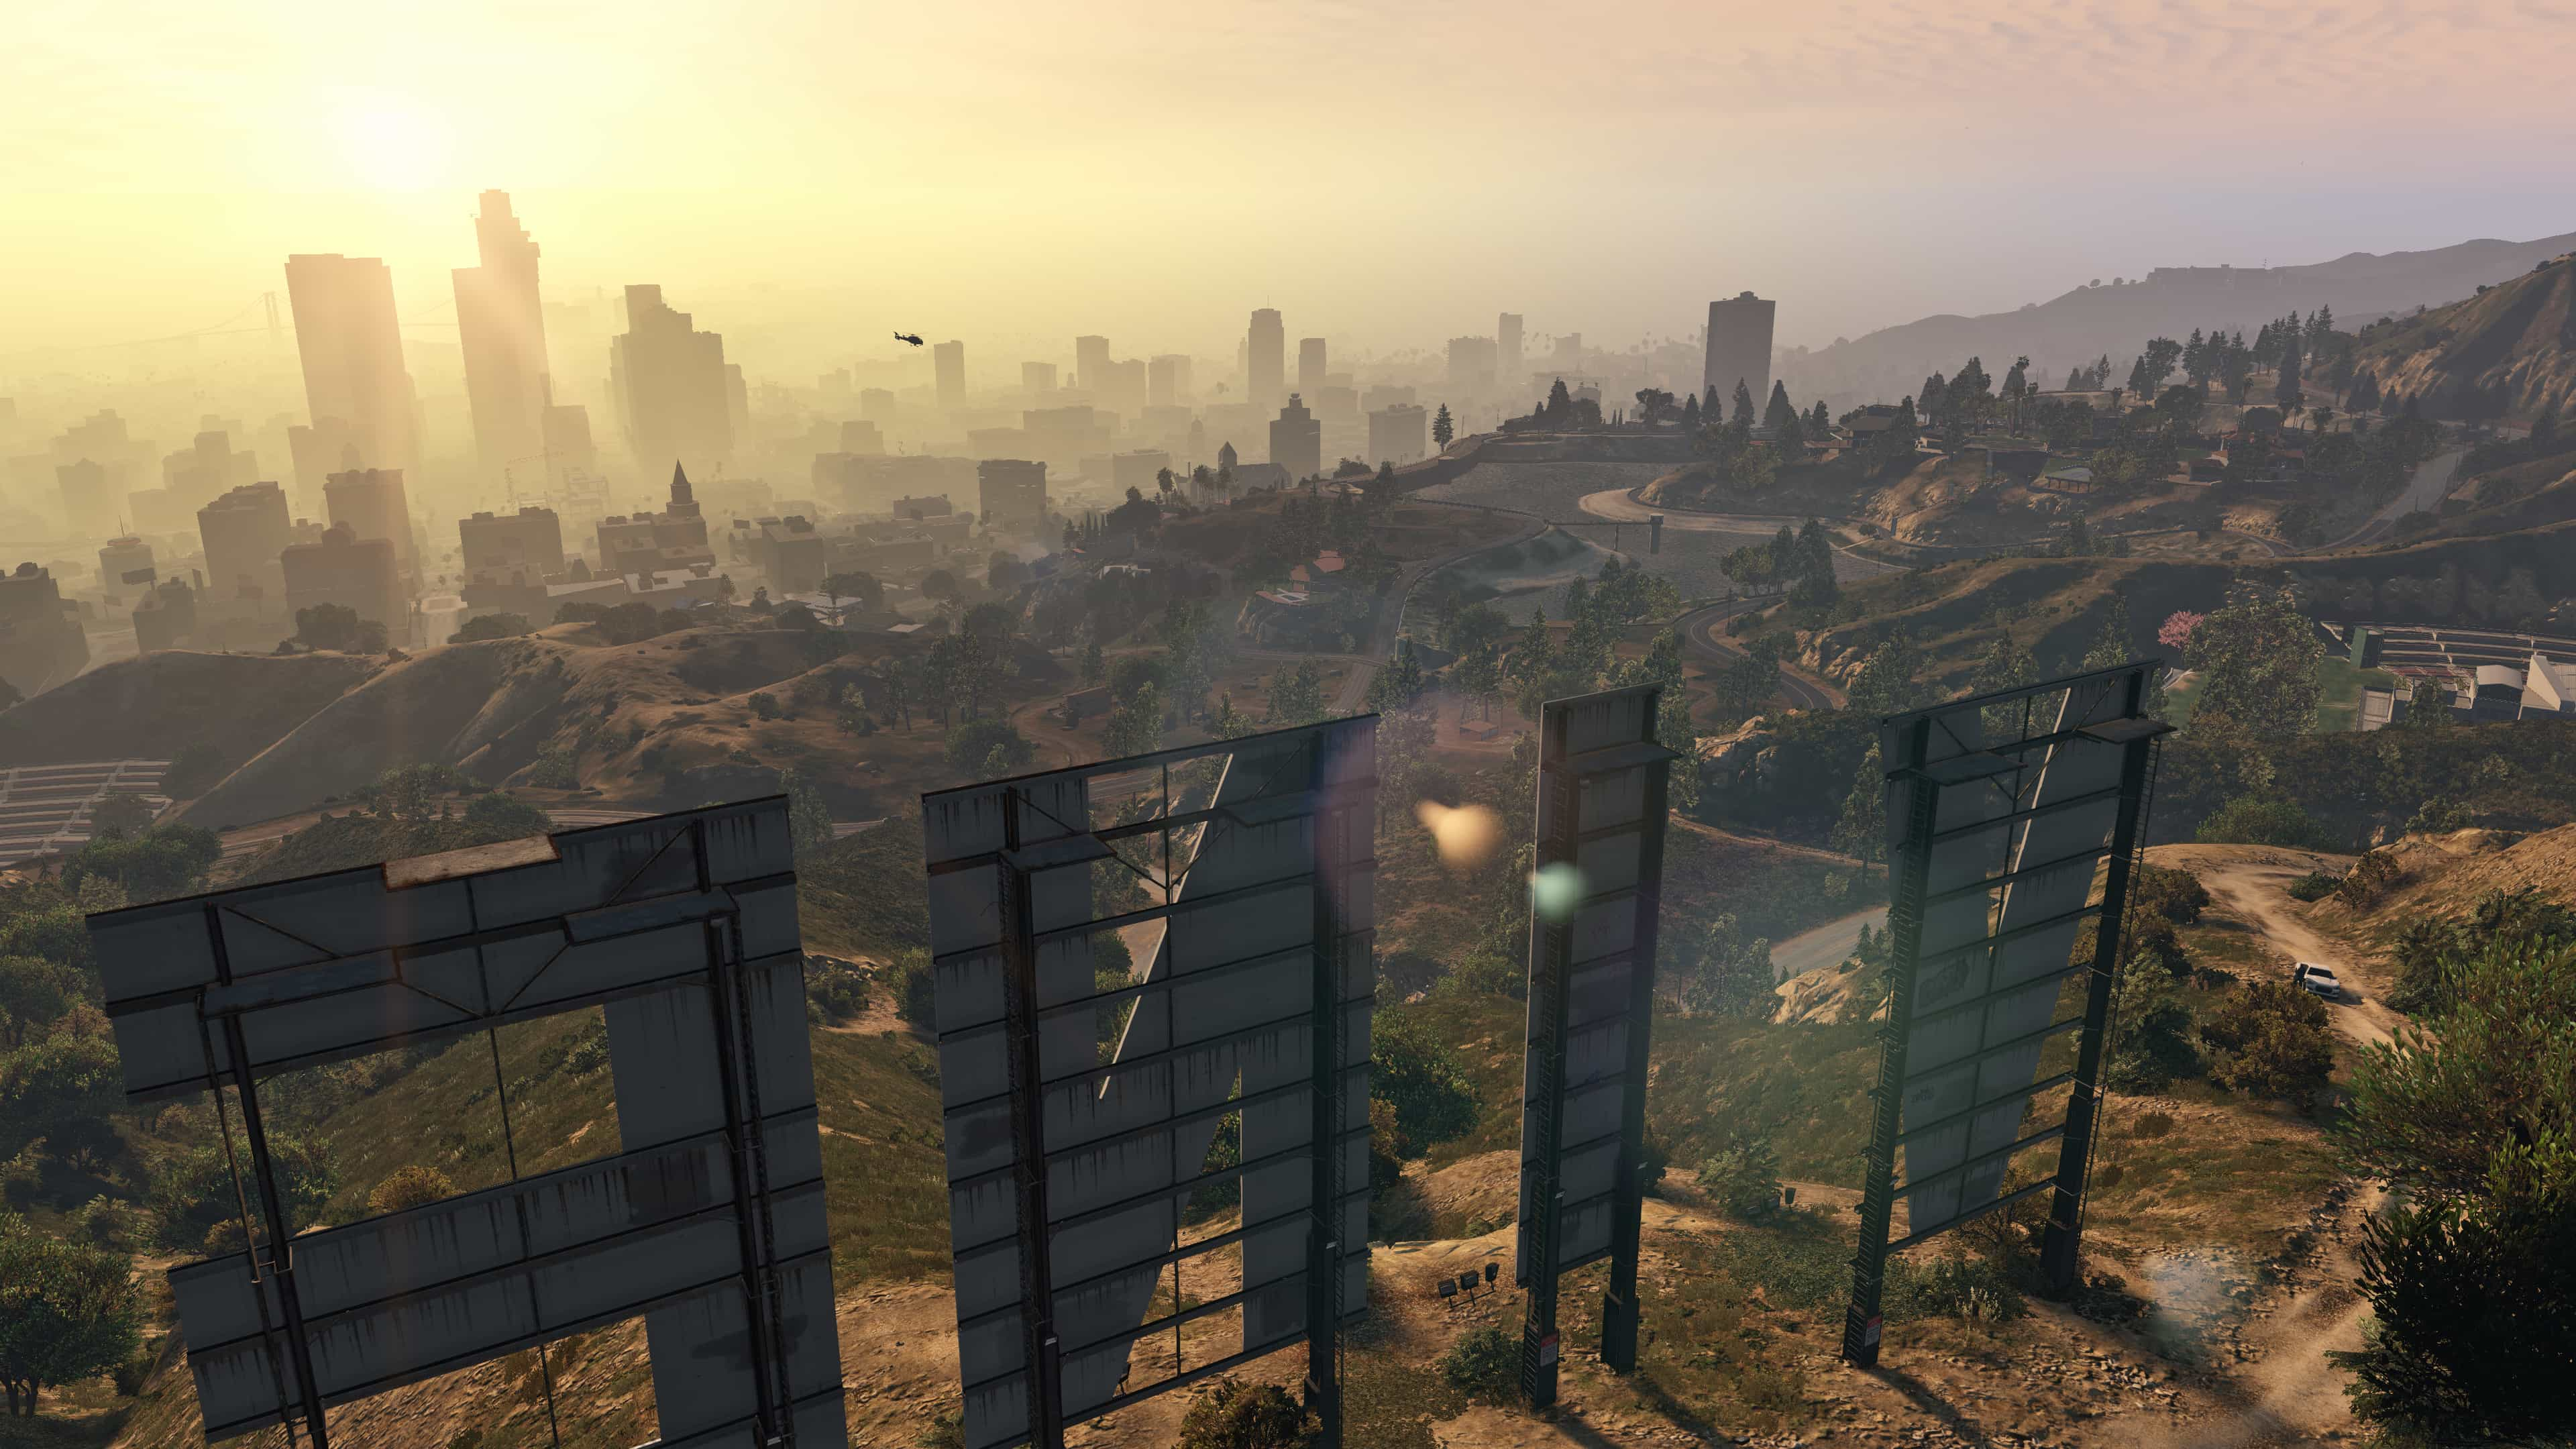 Xbox 1 Cheats Gta V Wiring Diagrams Programmable Integrated Circuit Isp1504abs118 Rf Transceiver Usb Ulpi New 4k Screenshots From Pc Version Of 5